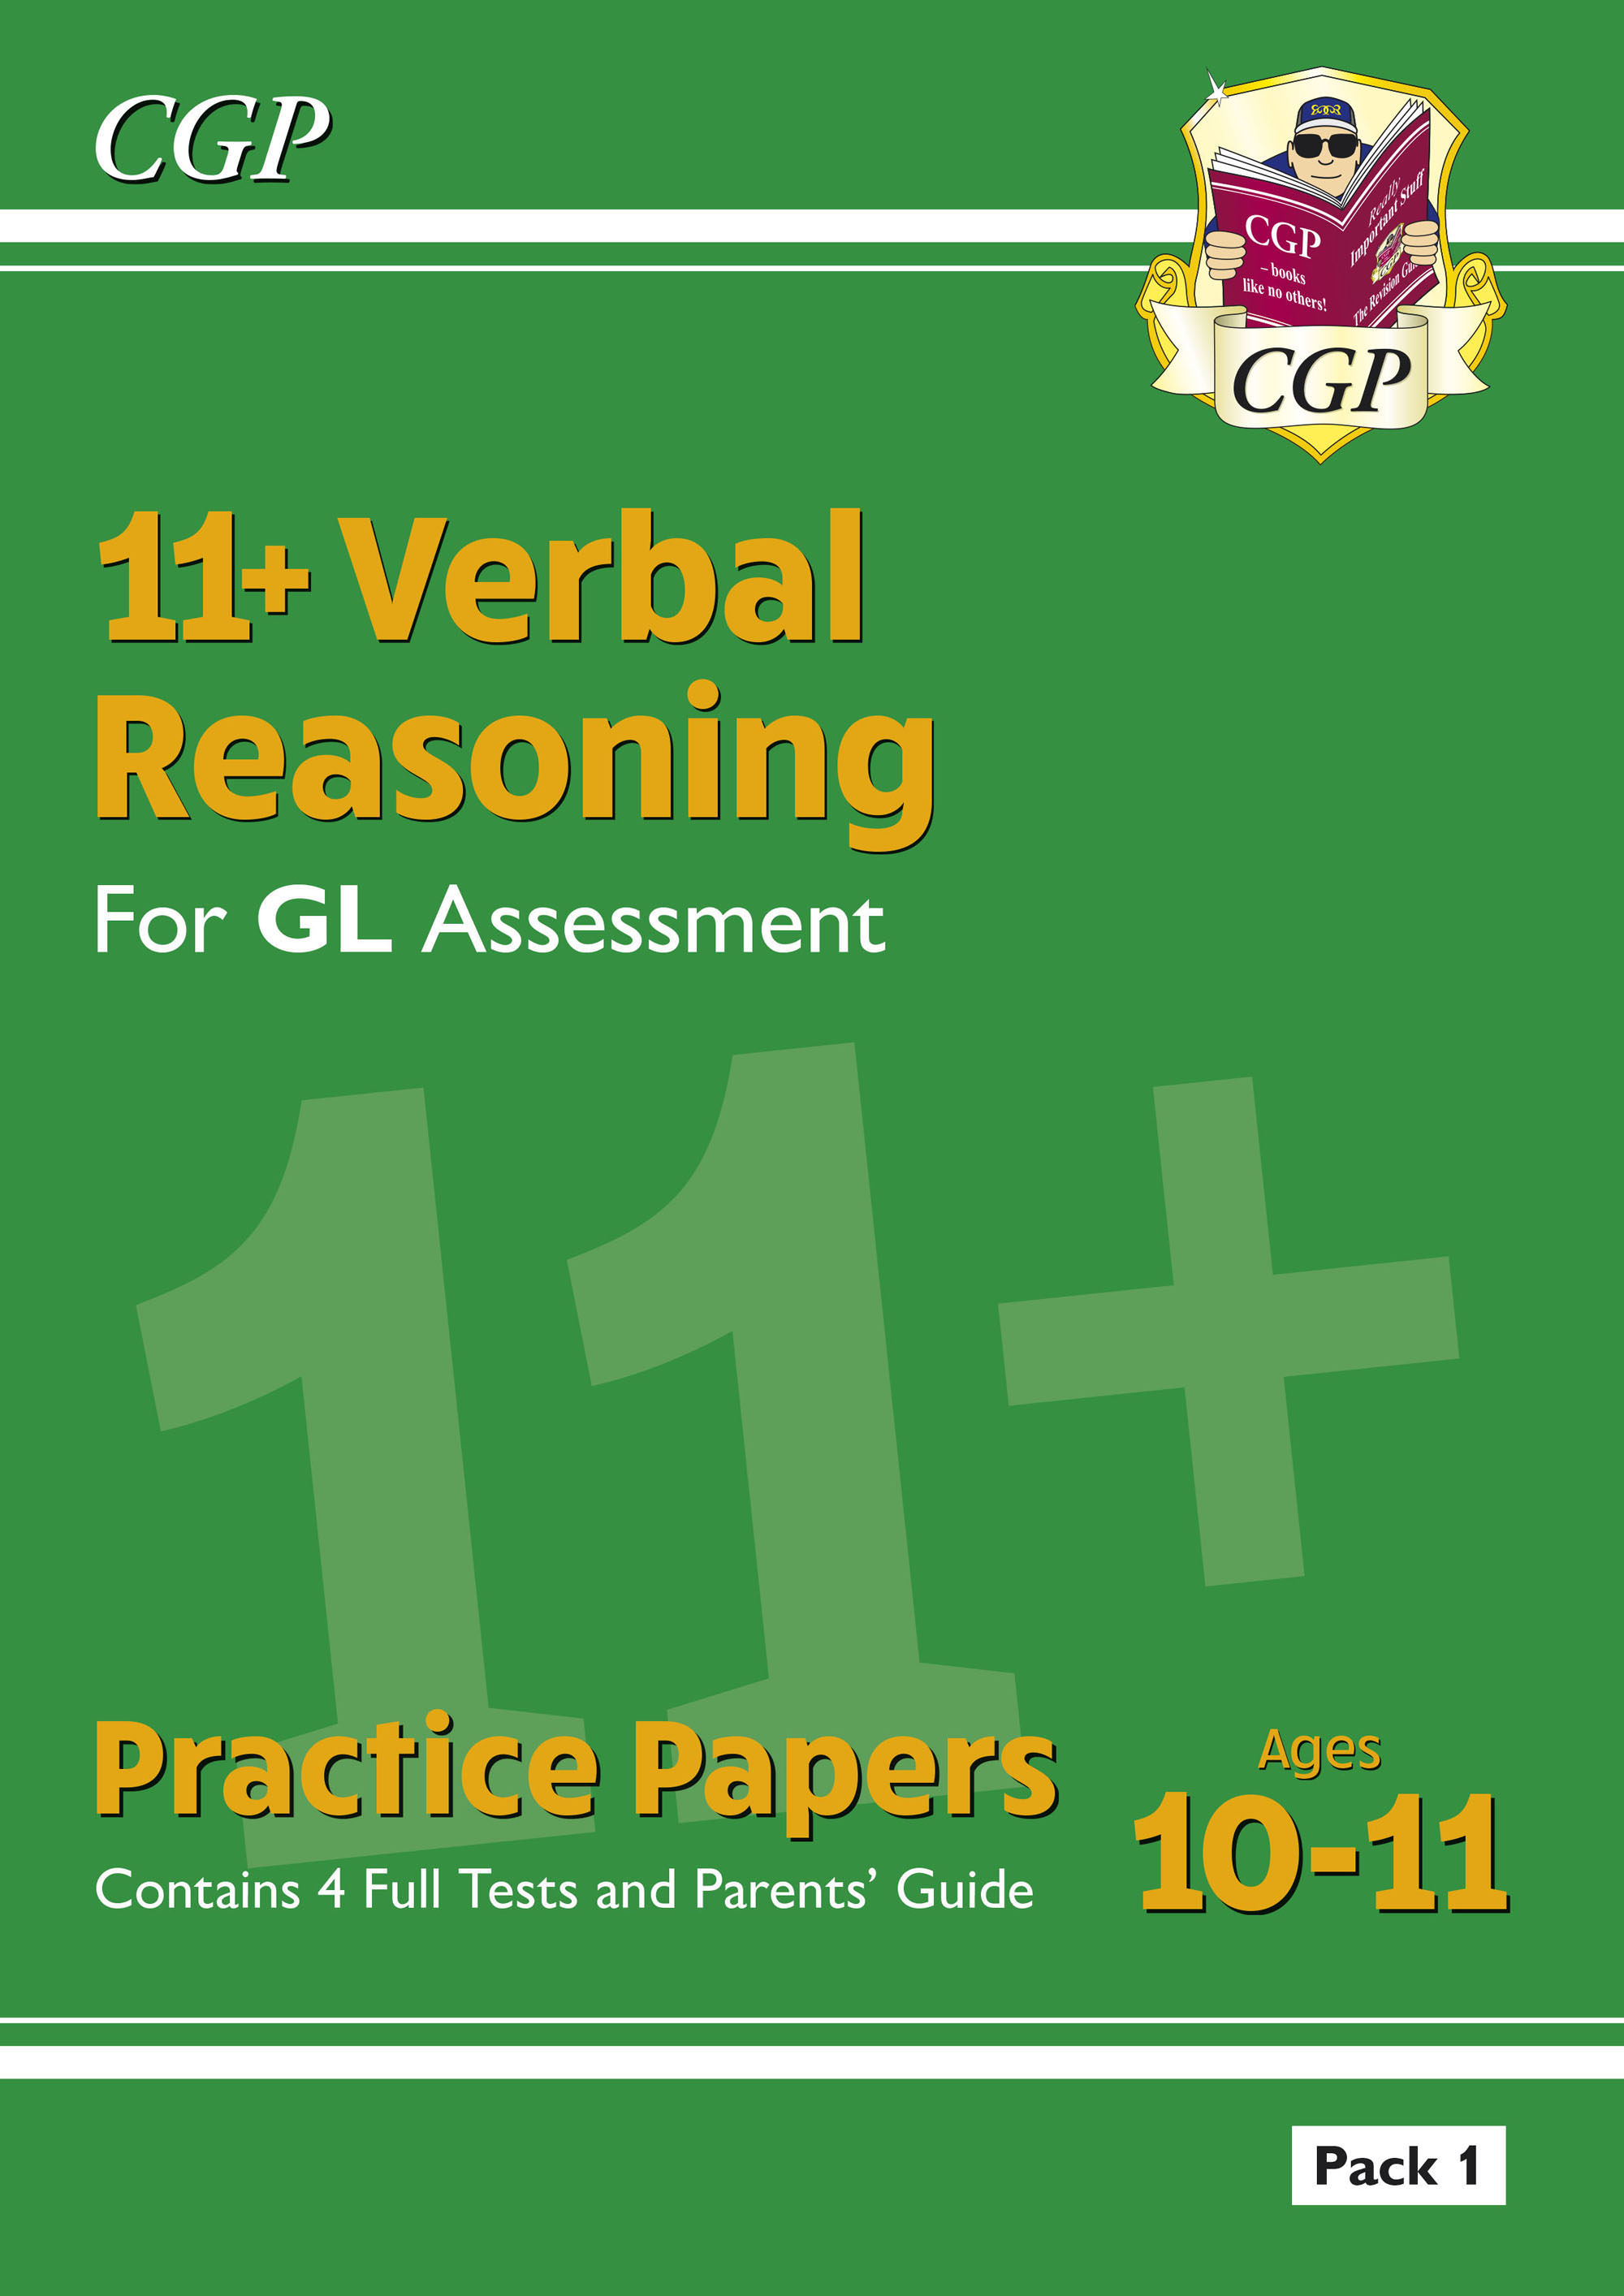 VHTE2DK - New 11+ GL Verbal Reasoning Practice Papers: Pack 1 (with Parents' Guide)